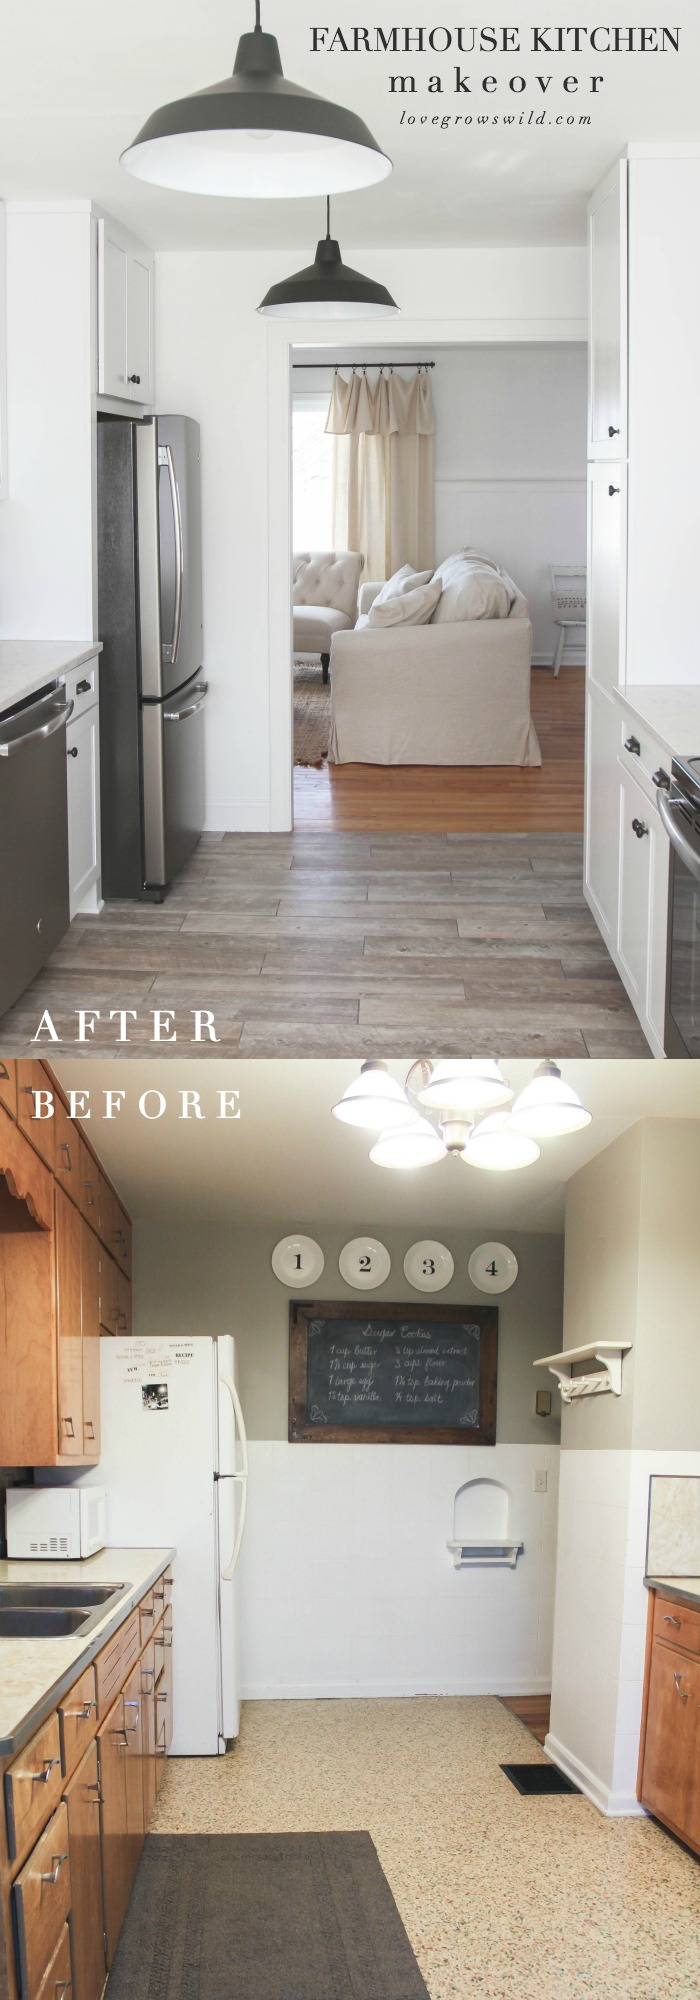 See this gorgeous farmhouse kitchen makeover from start to finish! Find out what it's REALLY like to live through a kitchen renovation! | LoveGrowsWild.com